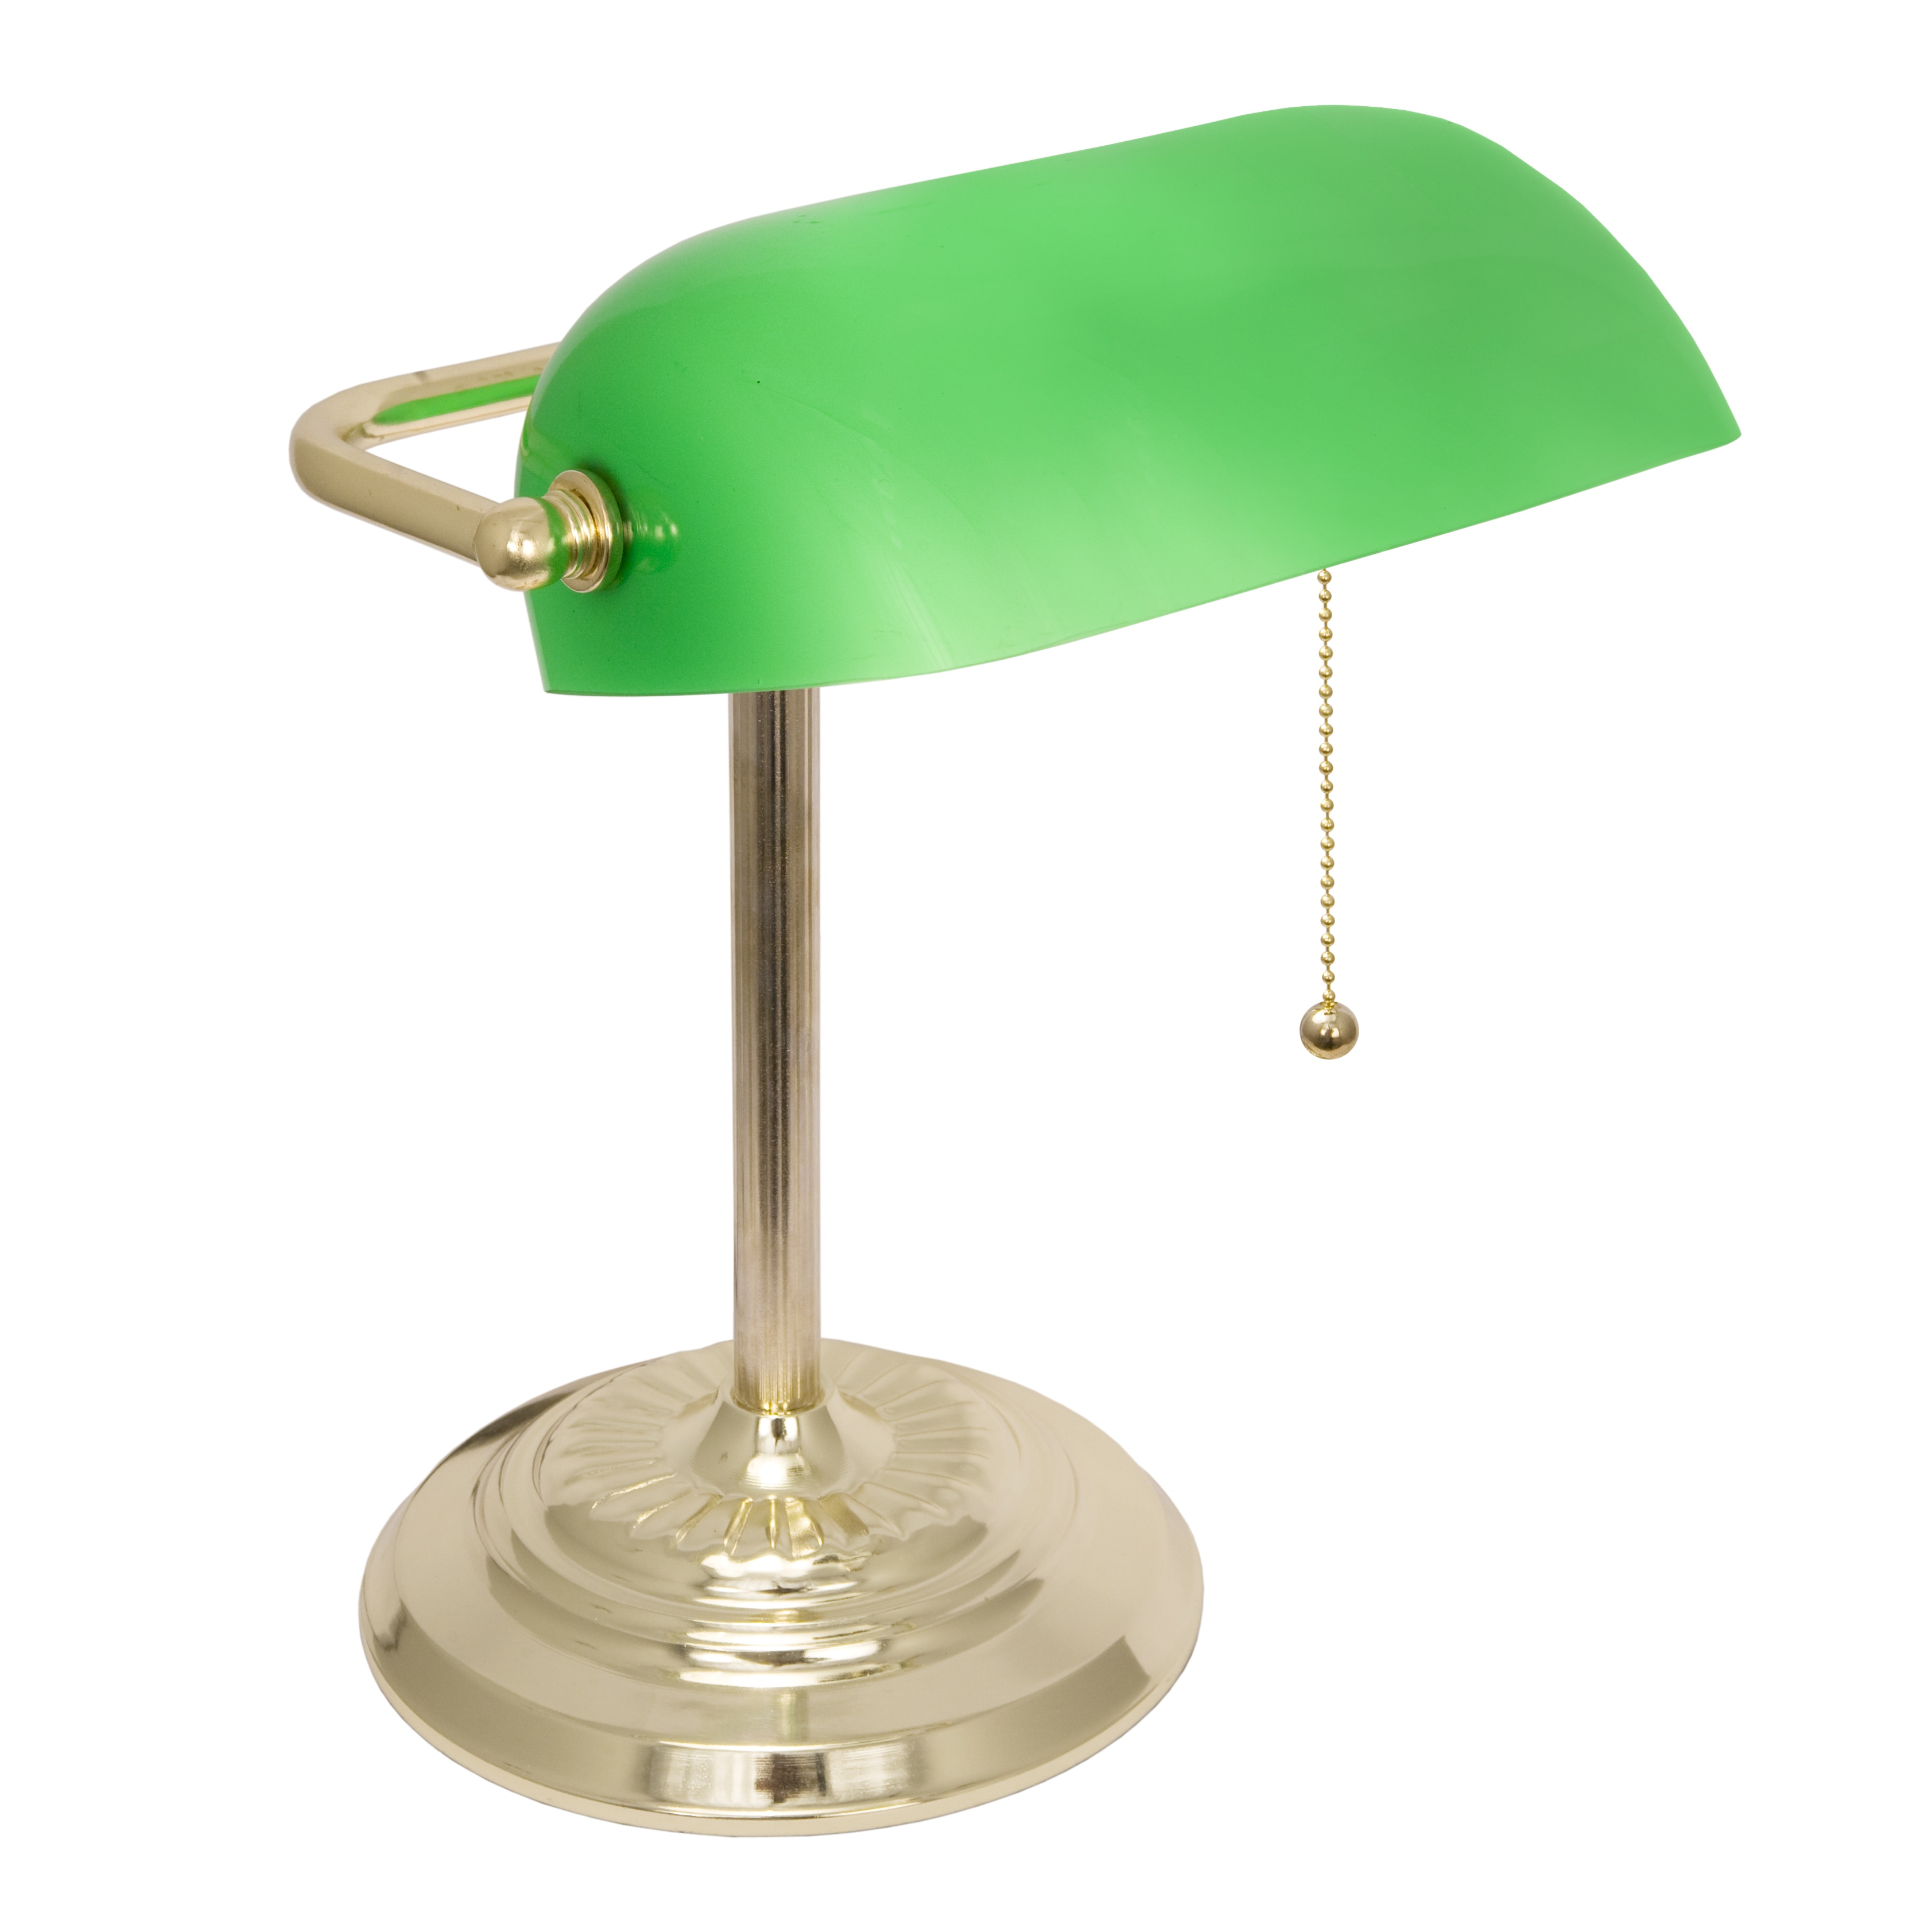 Light Accents Brass Finish Banker's Lamp with Green Glass...